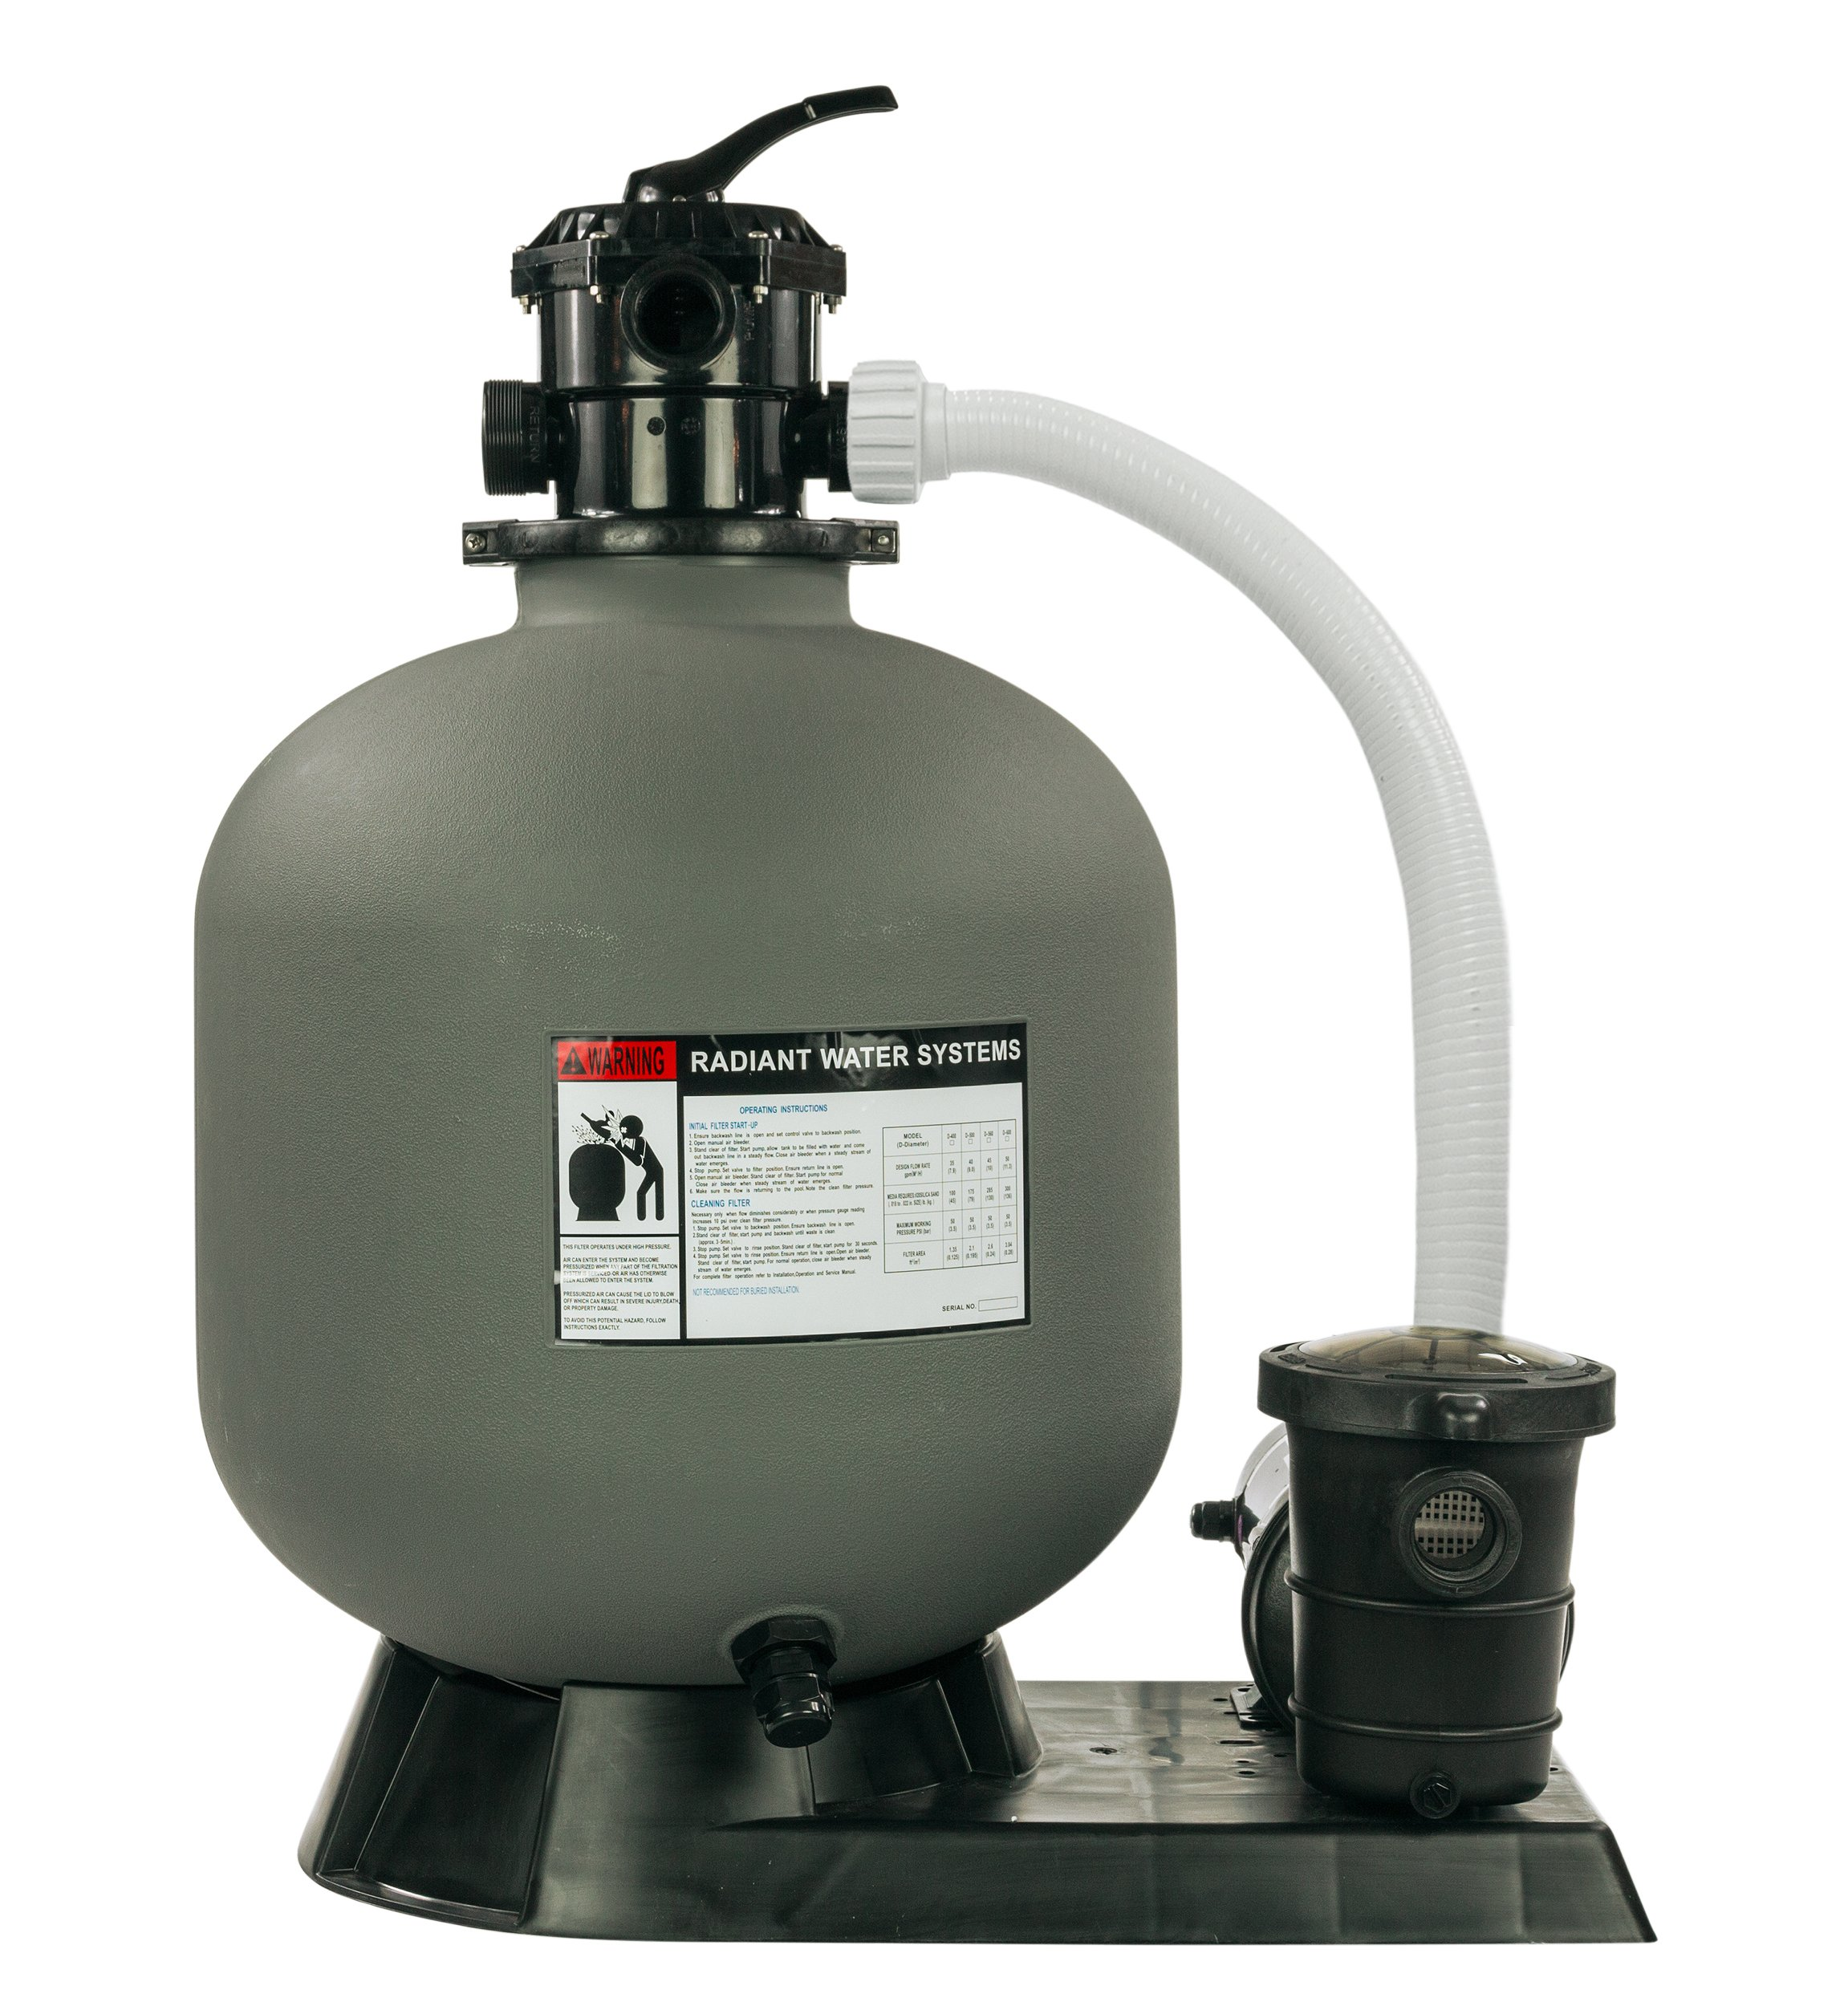 Rx Clear Radiant Complete Sand Filter System   for Above Ground Swimming Pool   Extreme Niagara 1.5 HP Pump   22 Inch Tank   220 Lb Sand Capacity   Up to 26,000 Gallons by Rx Clear